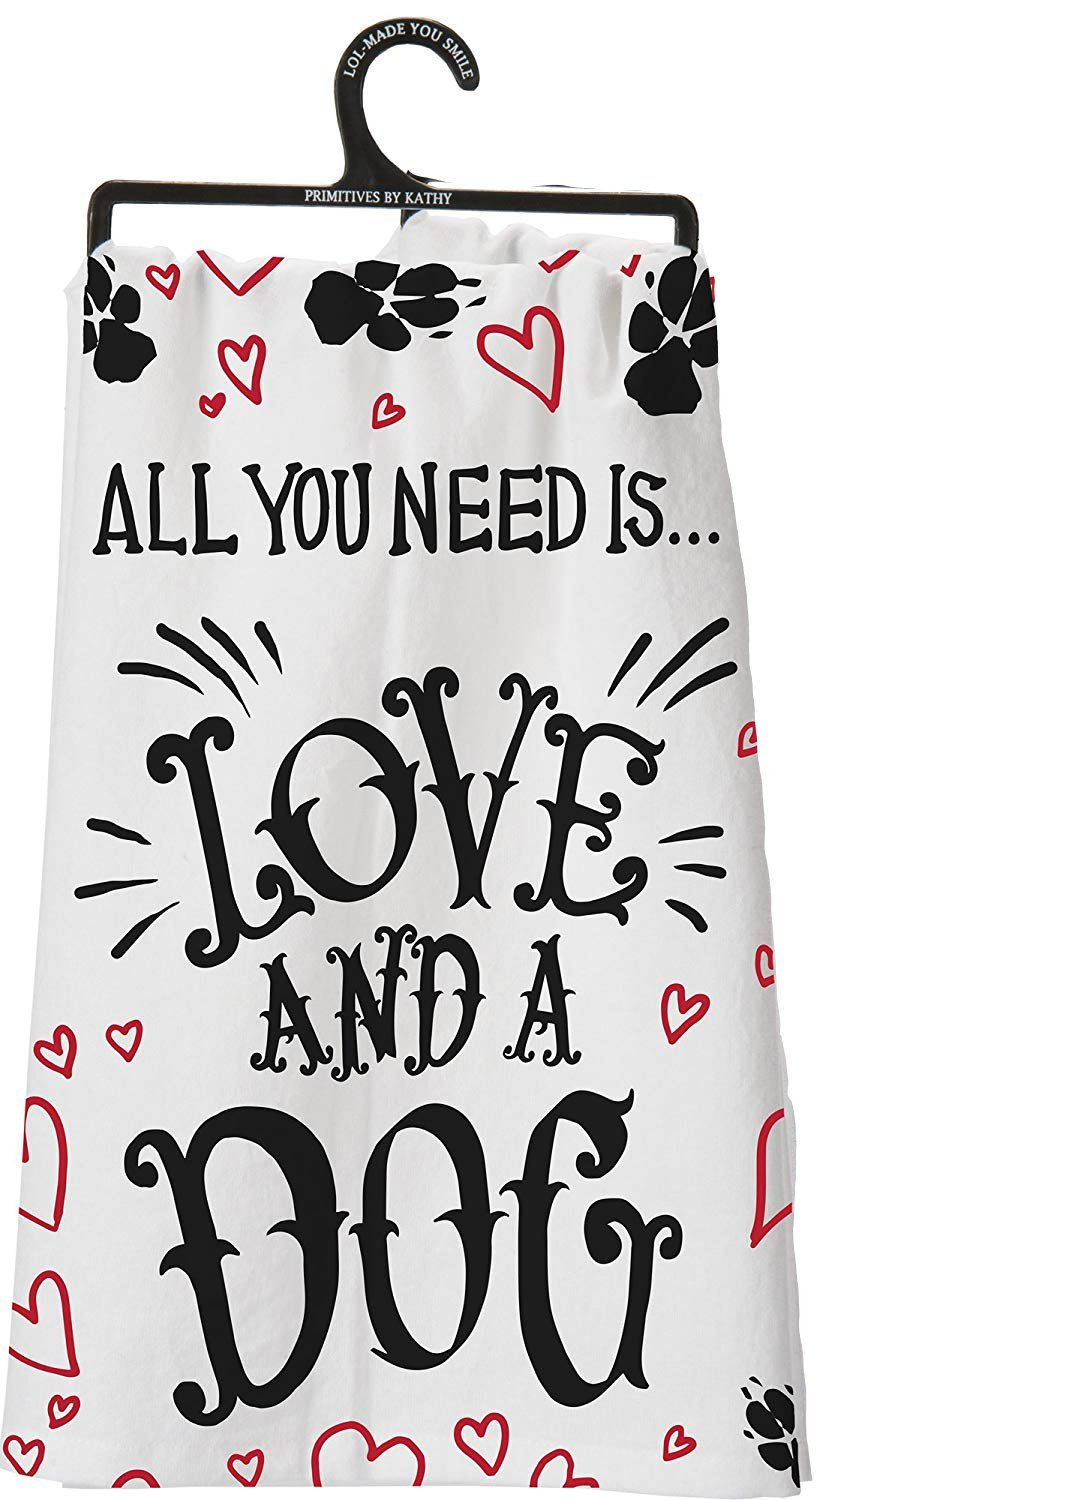 Primitves By Kathy Tea Hand Dish Towel All You Need Is Love And A Dog by PBK (Image #1)